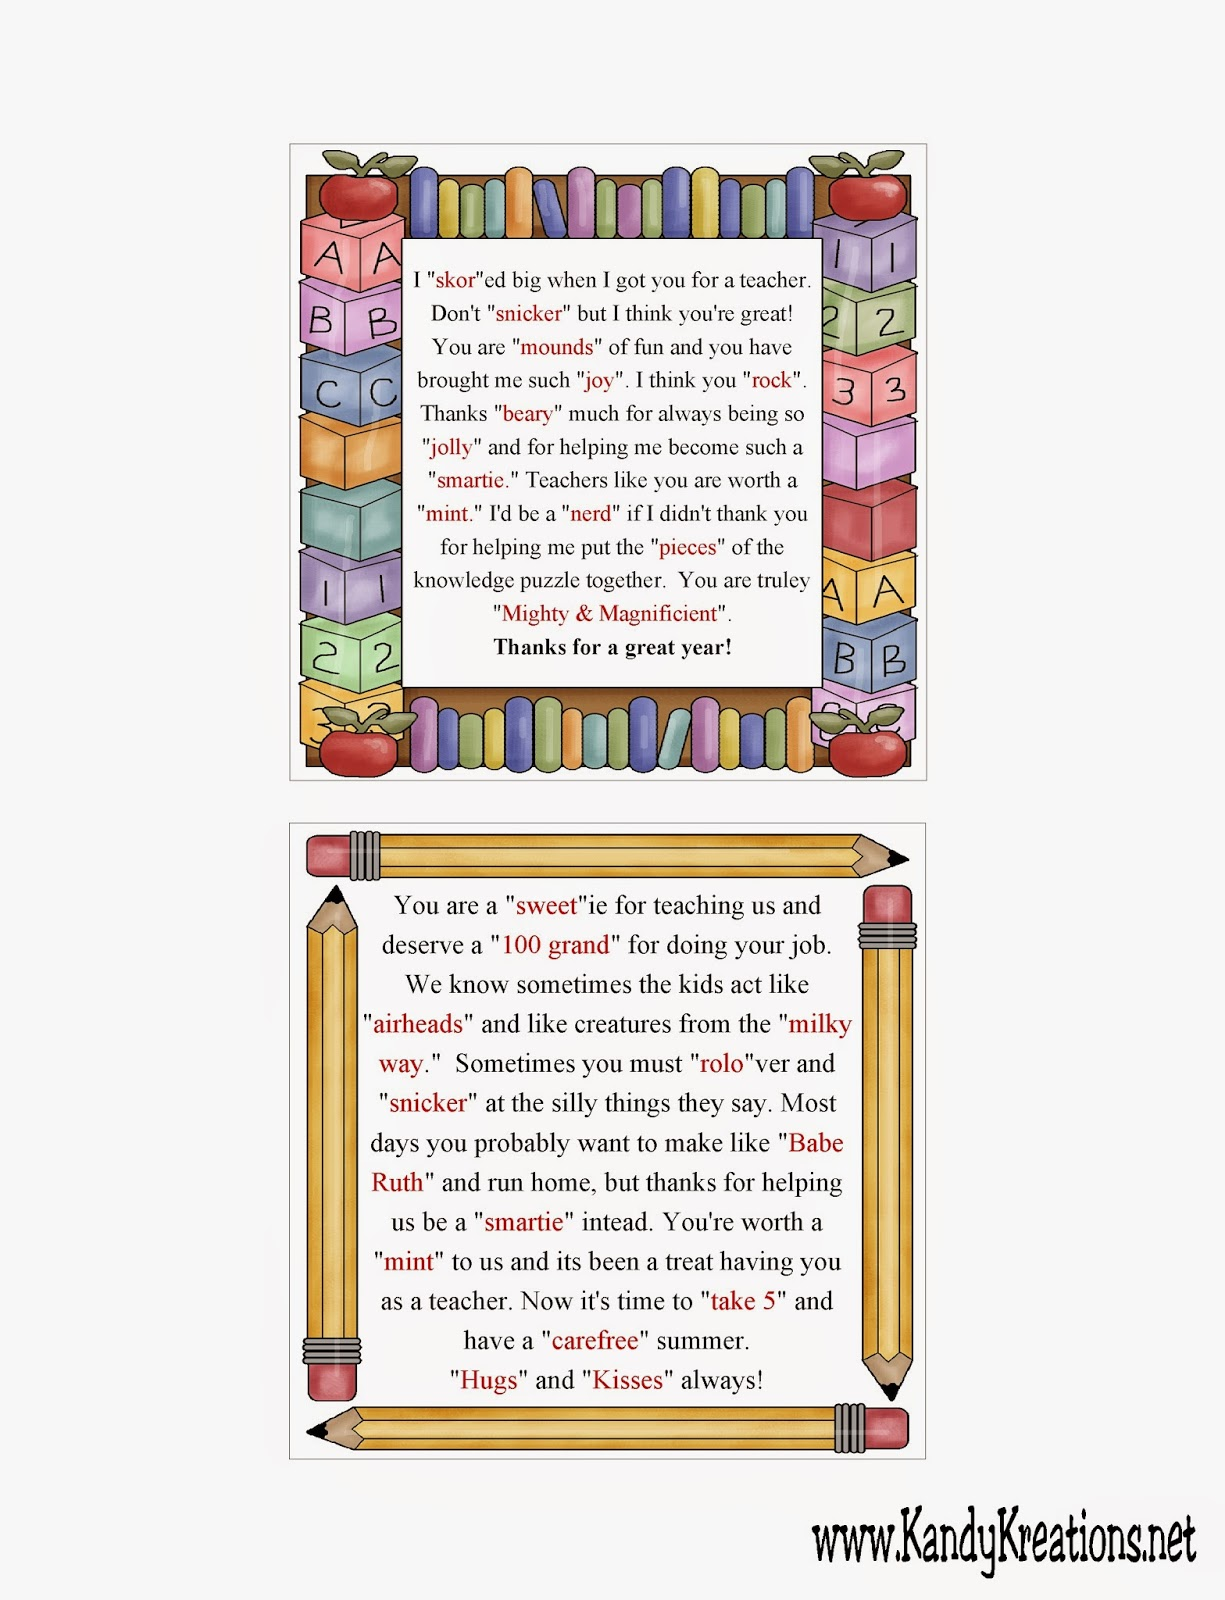 Teacher Candy Gram Thank you Poem Printable for Teacher Gift